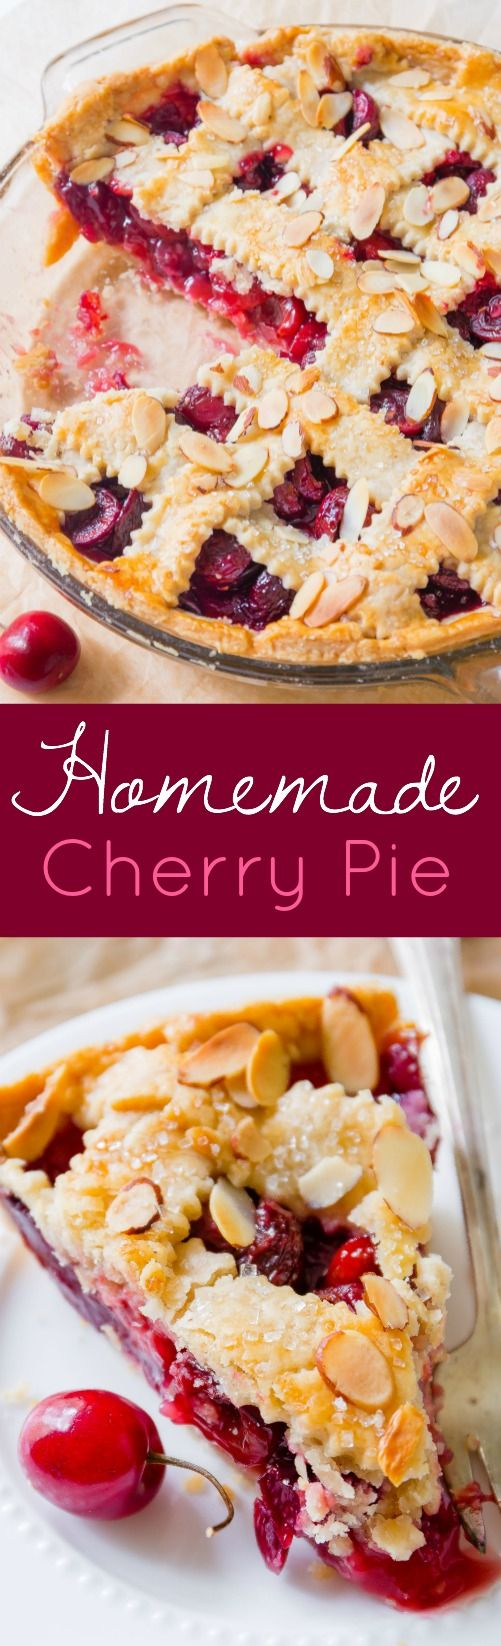 This is my favorite recipe for Homemade Cherry Pie!